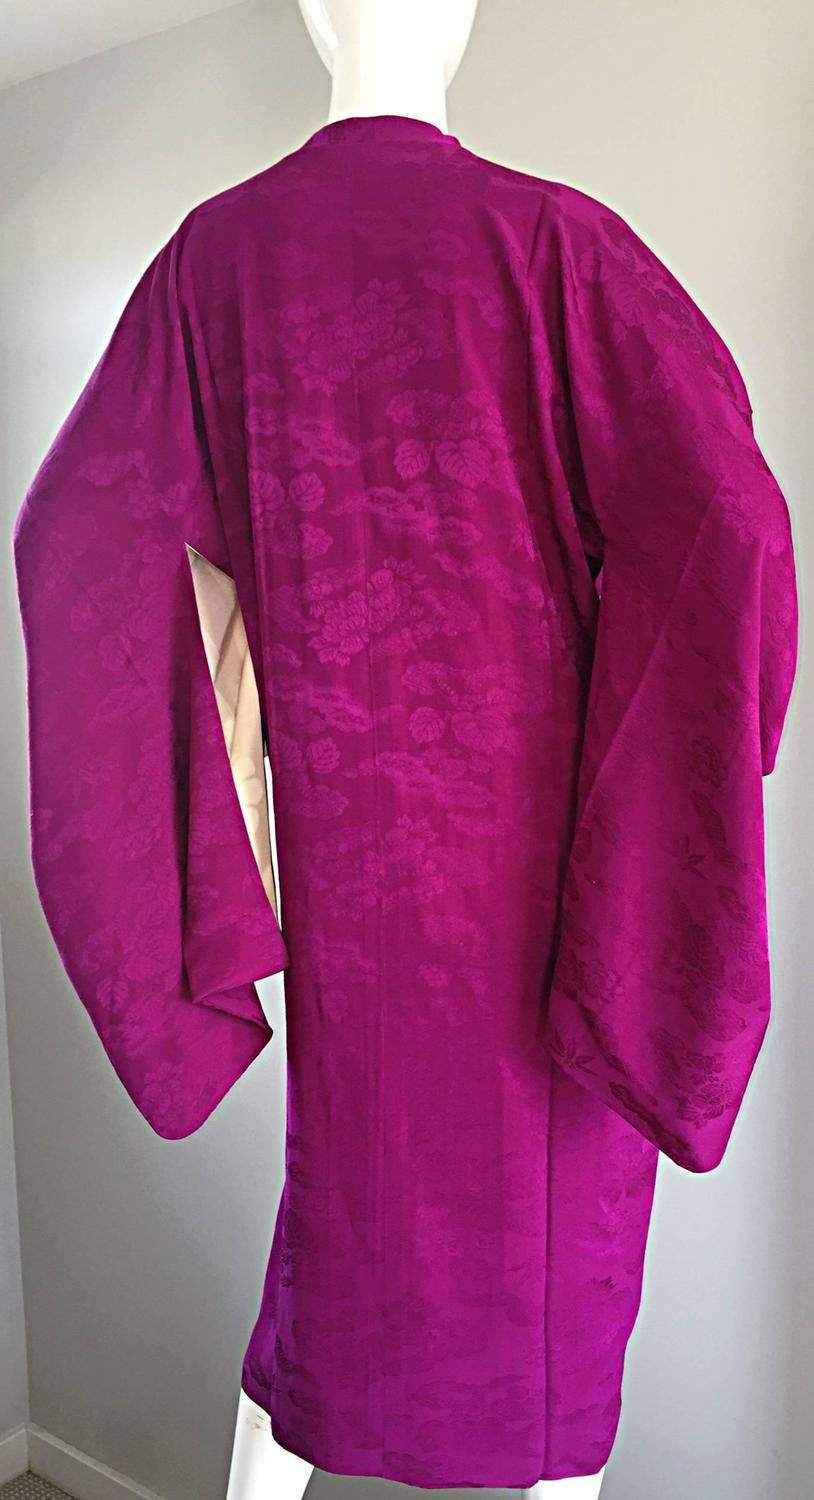 Find great deals on eBay for purple kimono. Shop with confidence.